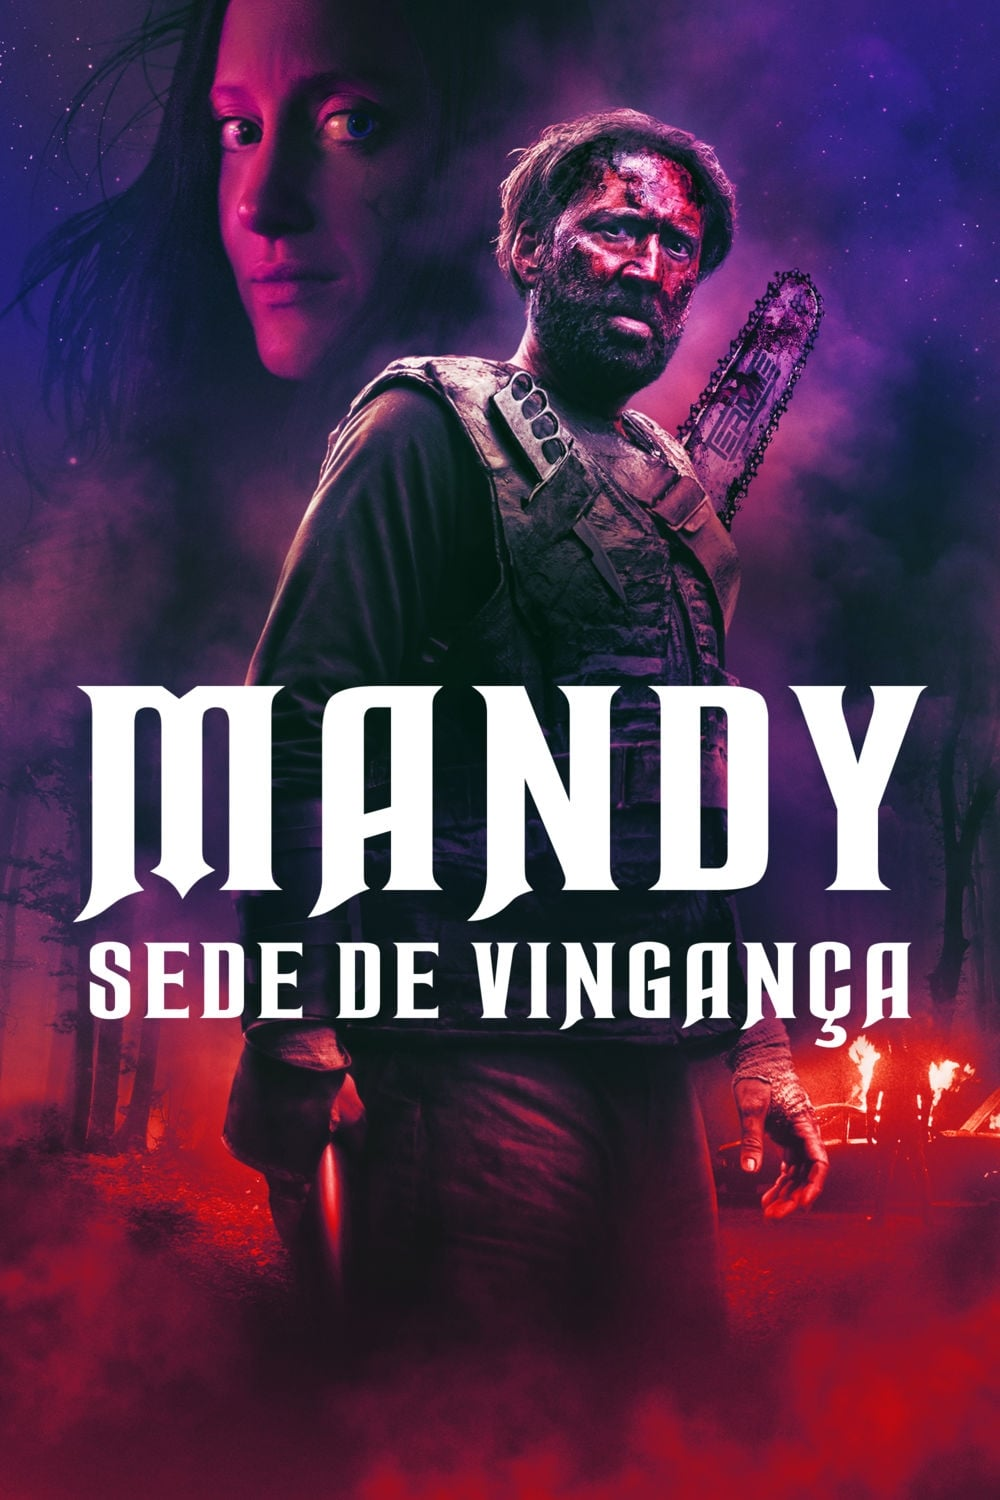 Mandy – Sede de Vingança (2019) Torrent - BluRay 720p e 1080p Dublado / Dual Áudio 5.1 Download